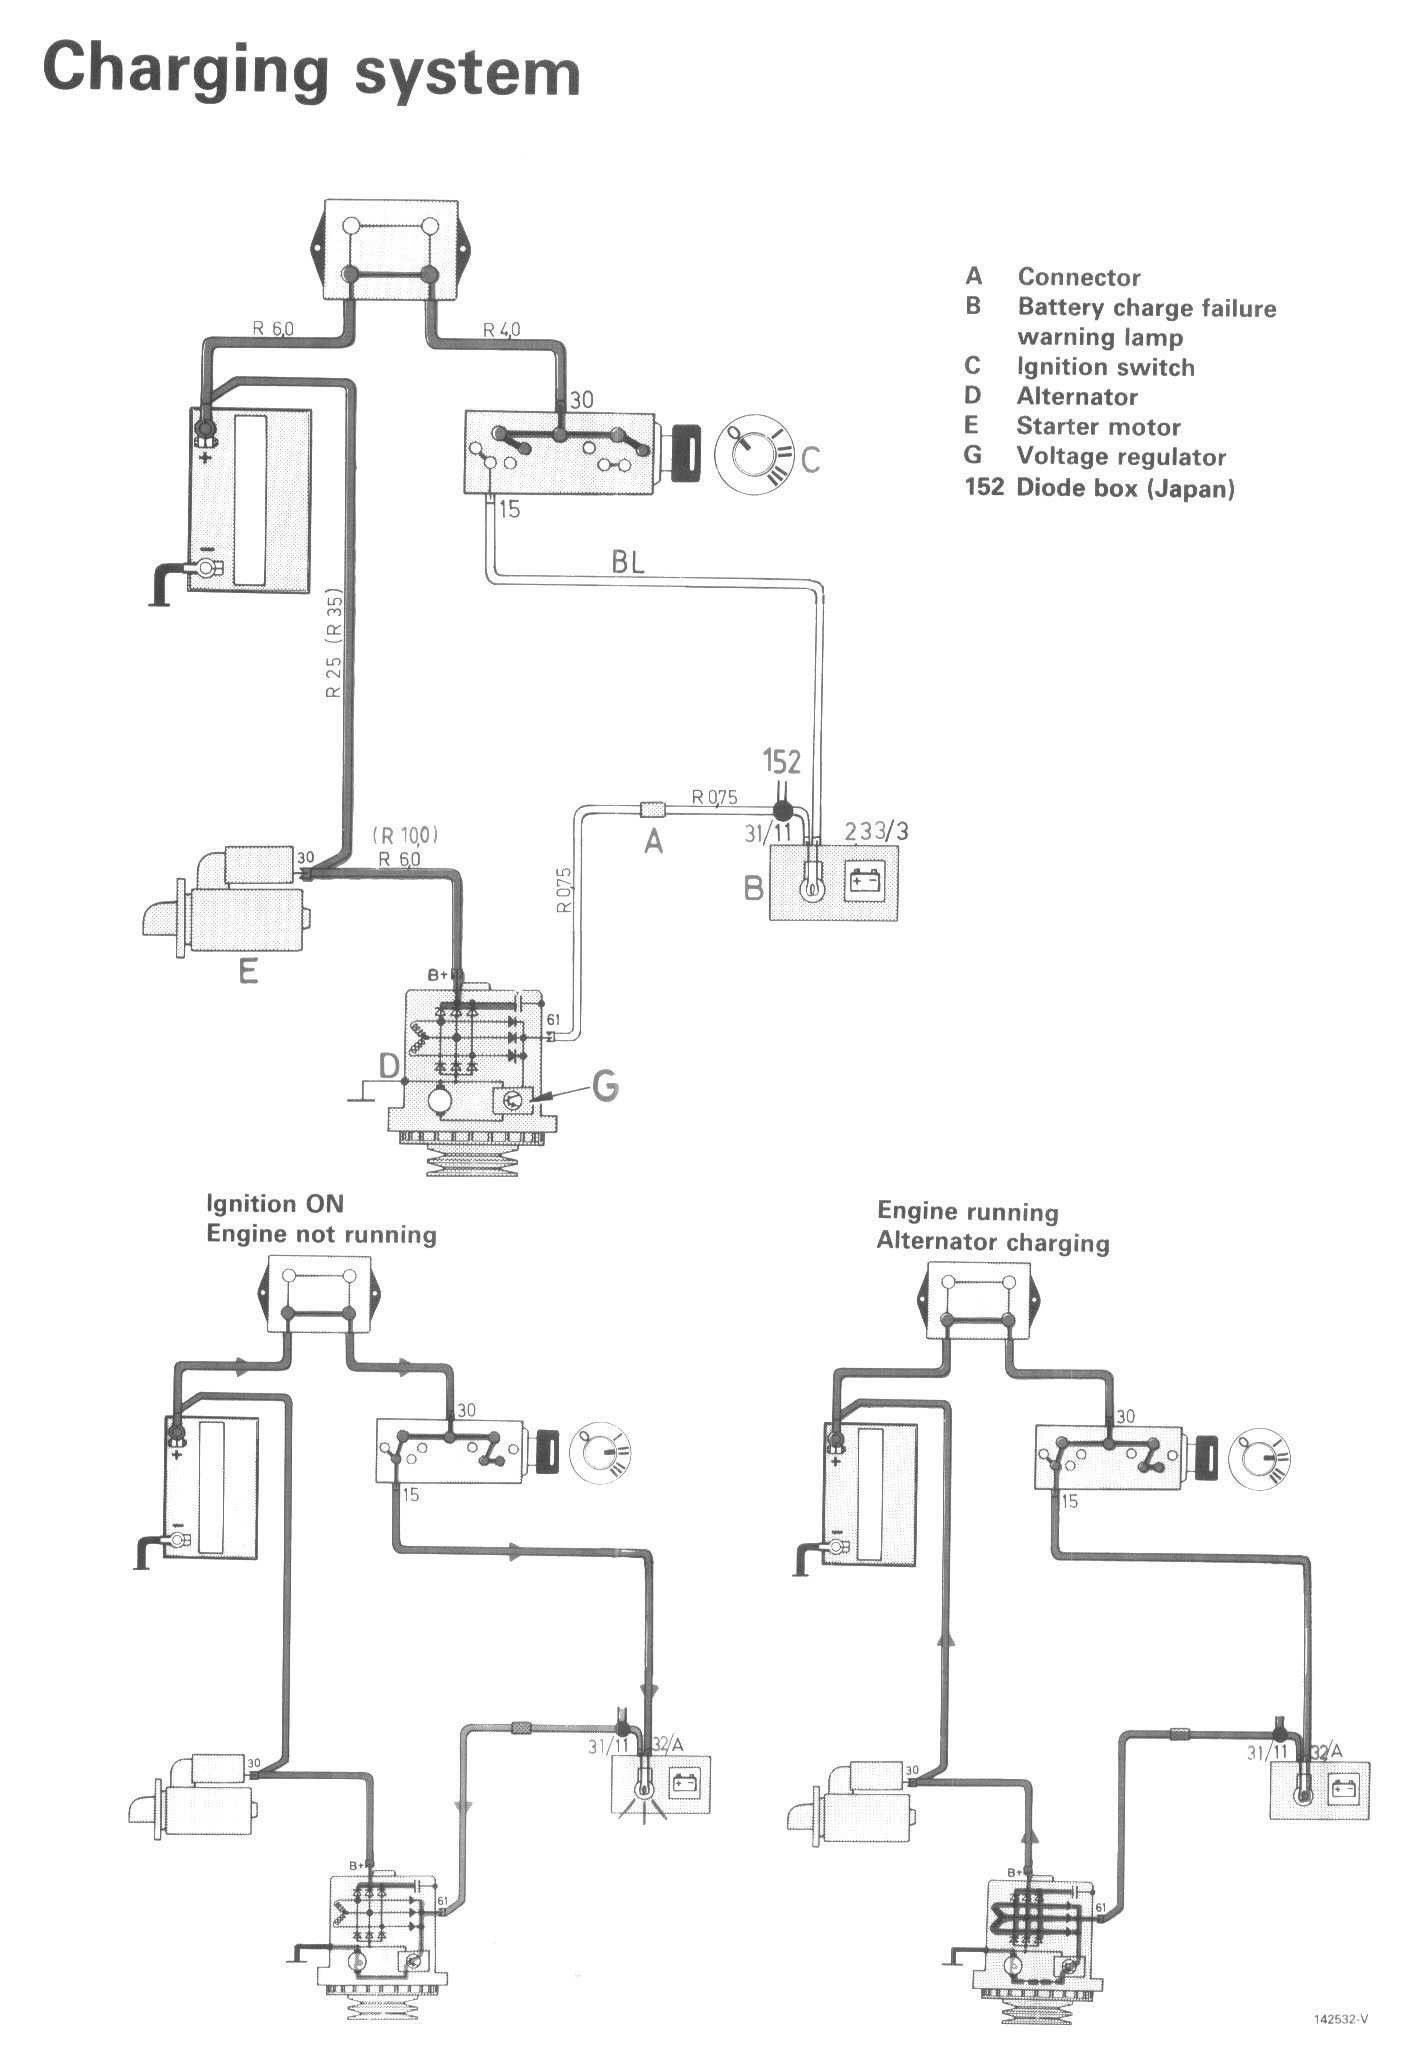 small resolution of volvo penta outdrive wiring diagram 2 sx parts domainadvice org